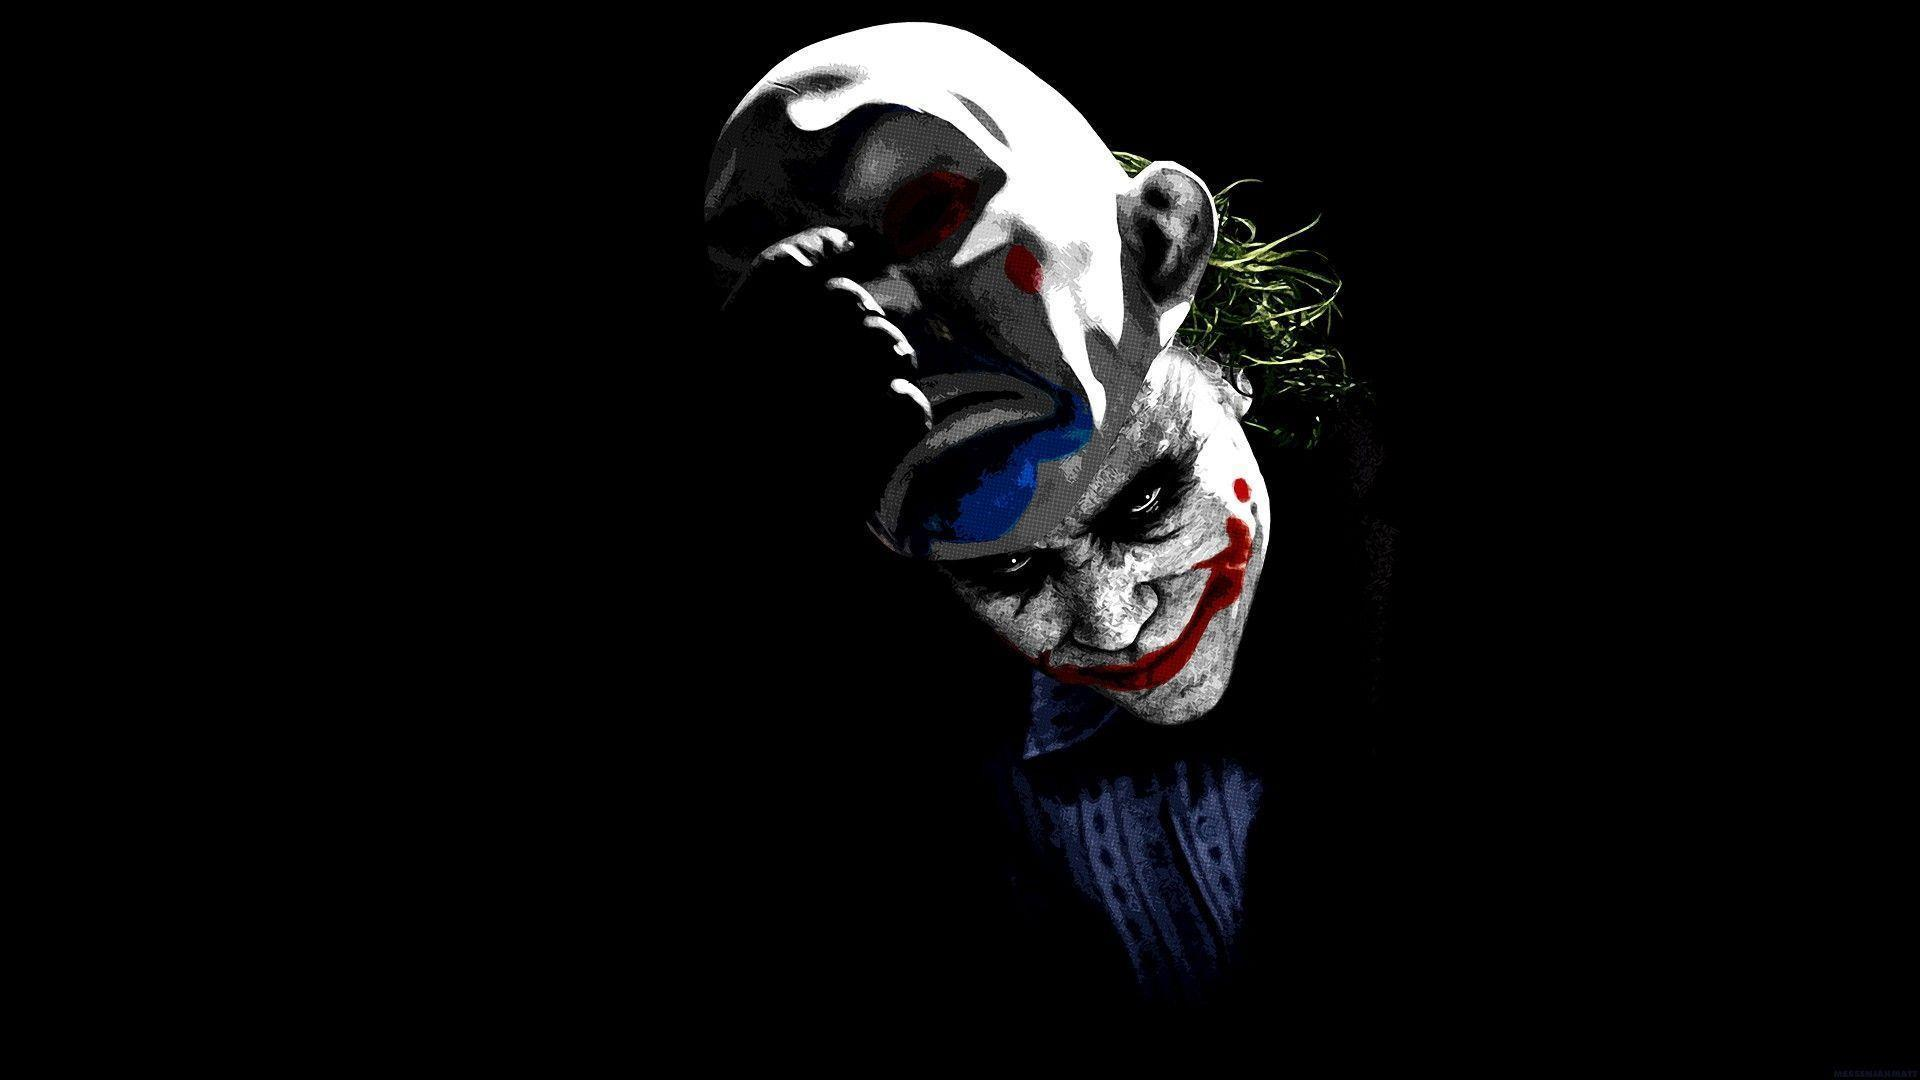 scary joker wallpapers - wallpaper cave